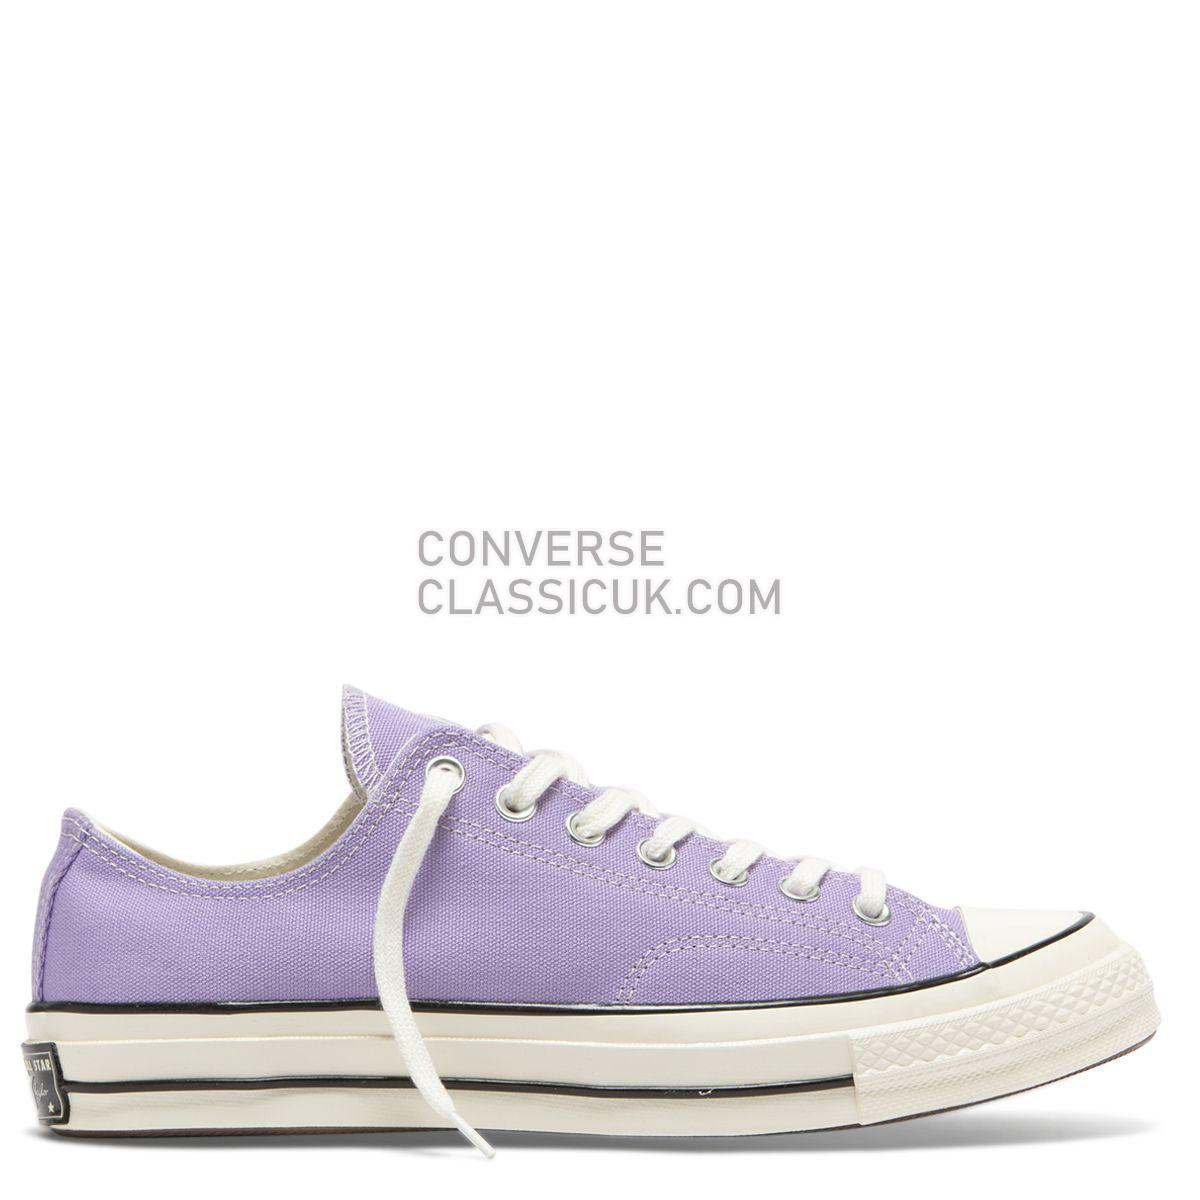 Converse Chuck Taylor All Star 70 Washed Canvas Low Top Washed Lilac Mens Womens Unisex 164405 Washed Lilac/Egret/Egret Shoes